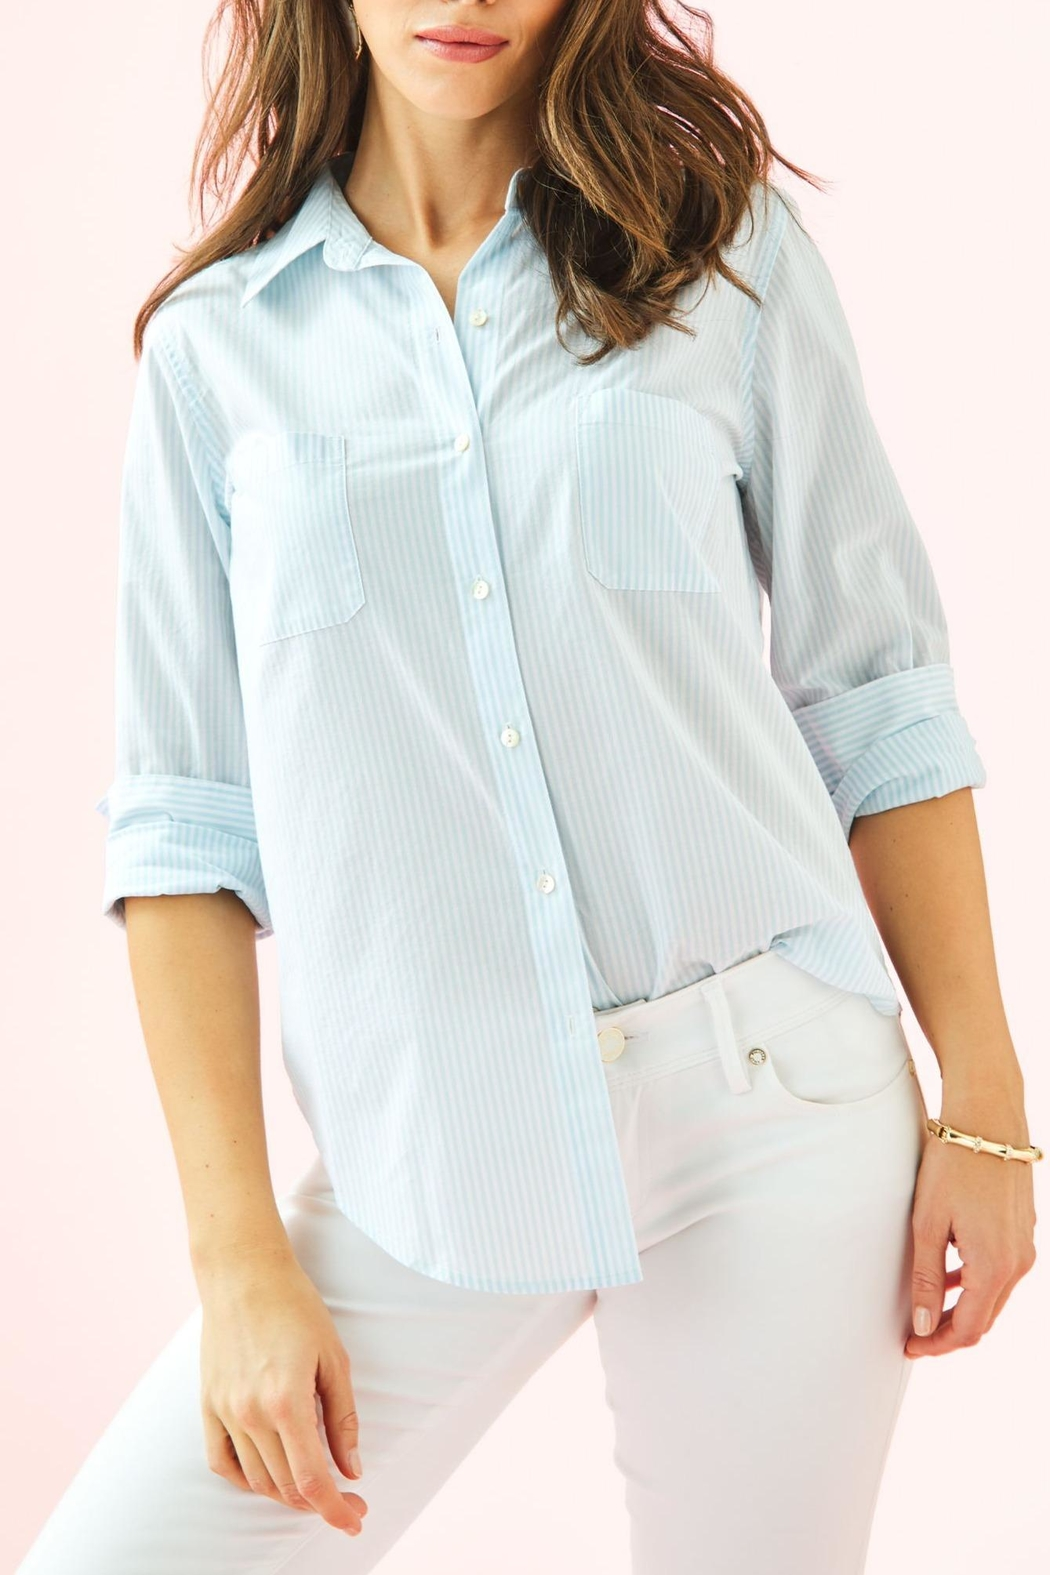 Lilly Pulitzer Seaview Button-Down Top - Main Image